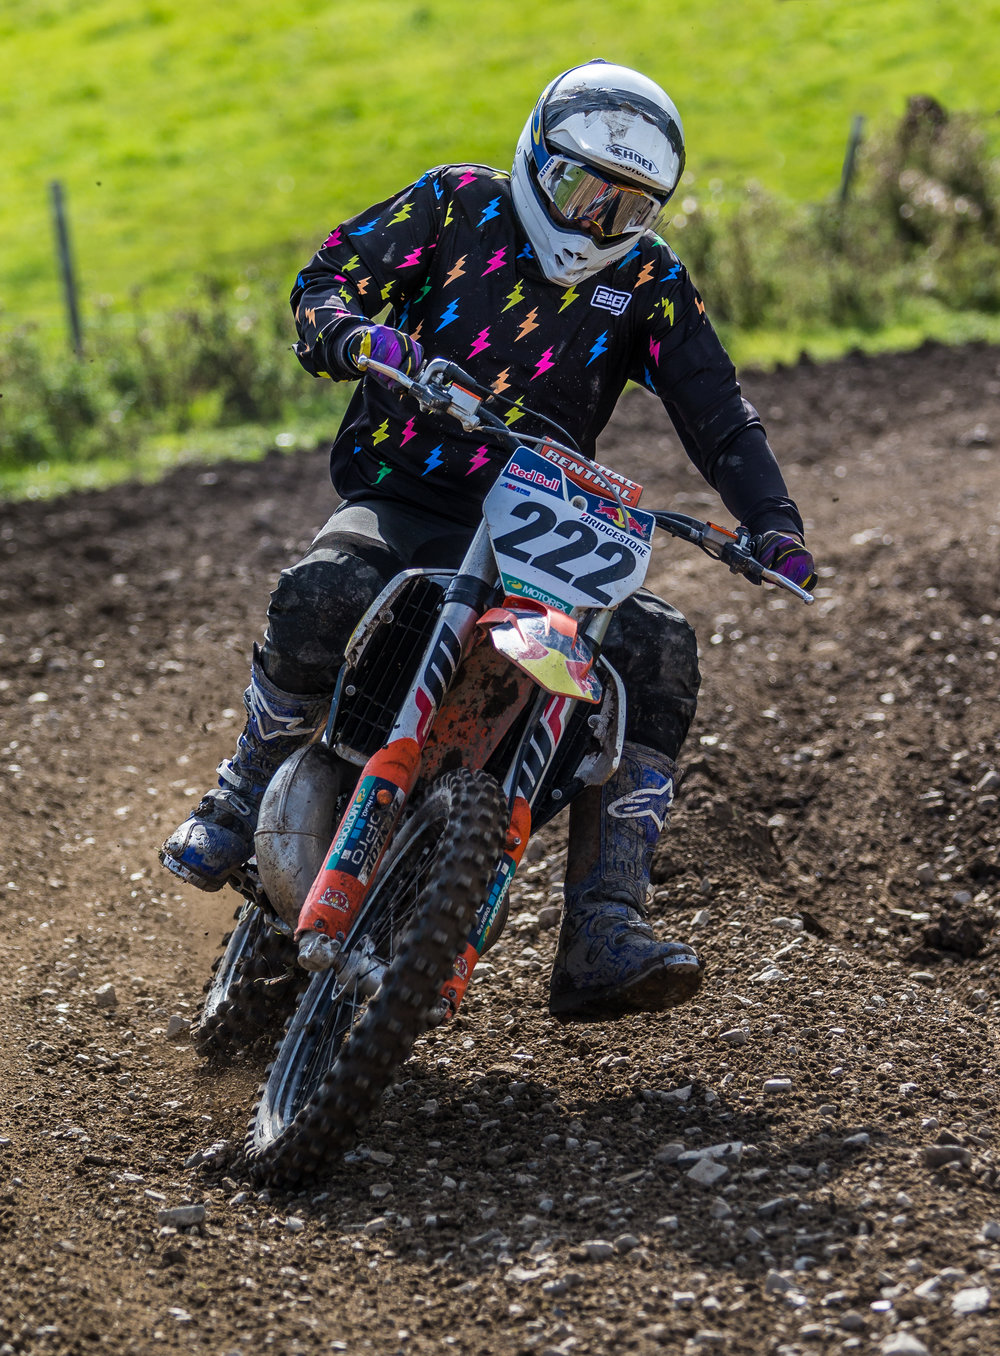 CHRIS CZORA, racing at Brymbo MX